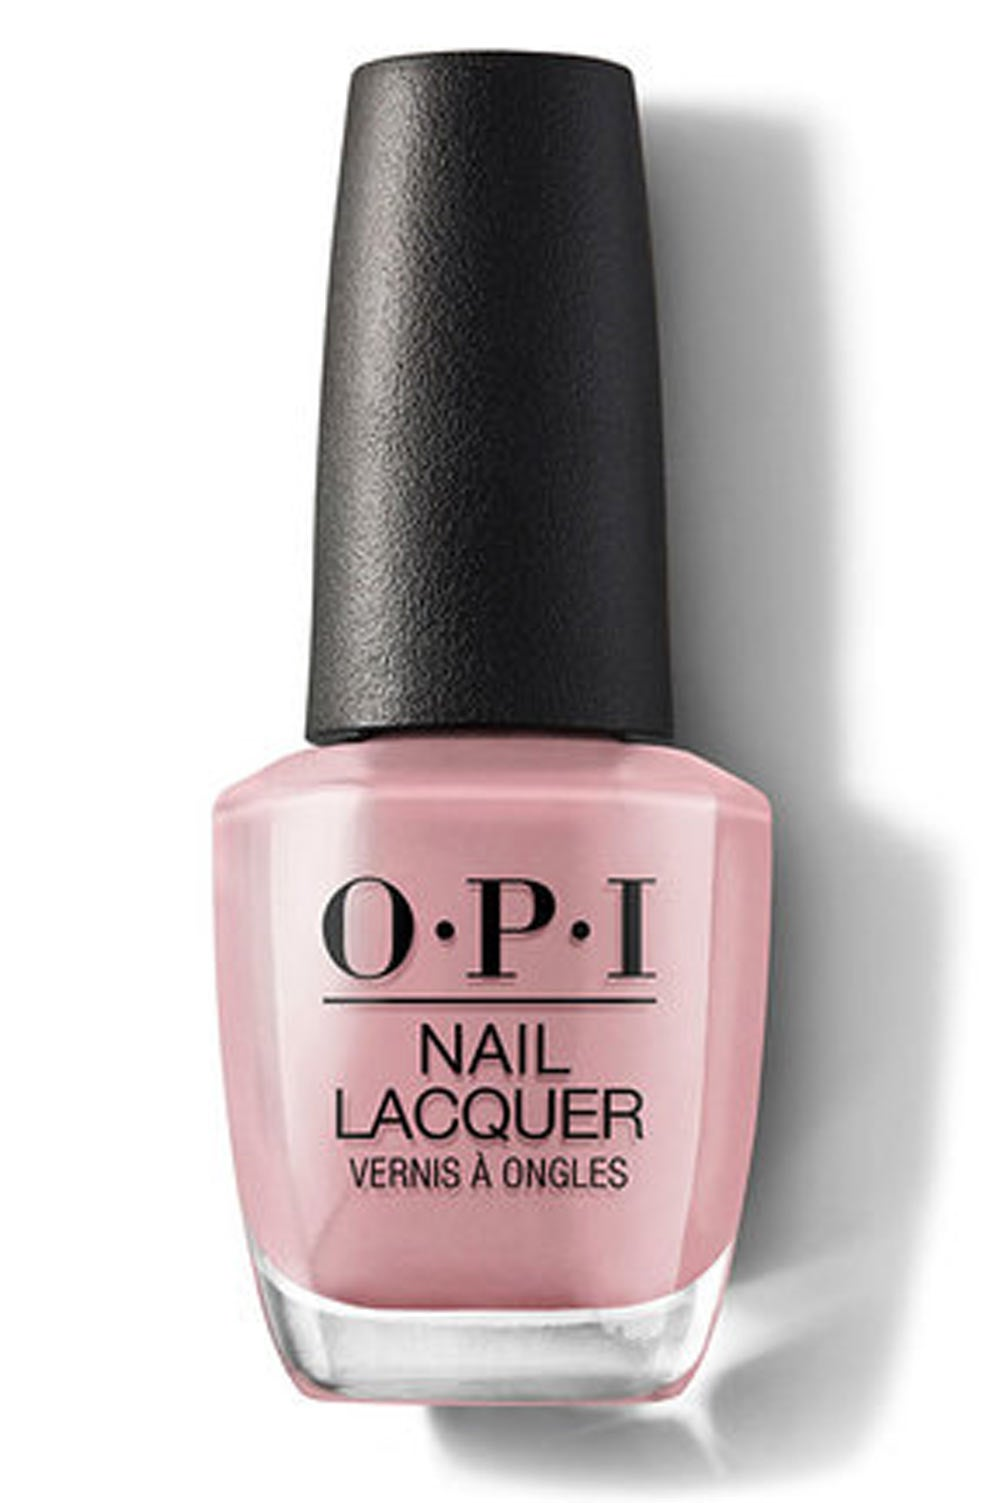 OPI Nail Lacquer Polish Tickle My France-y Polish for Cancer Patients